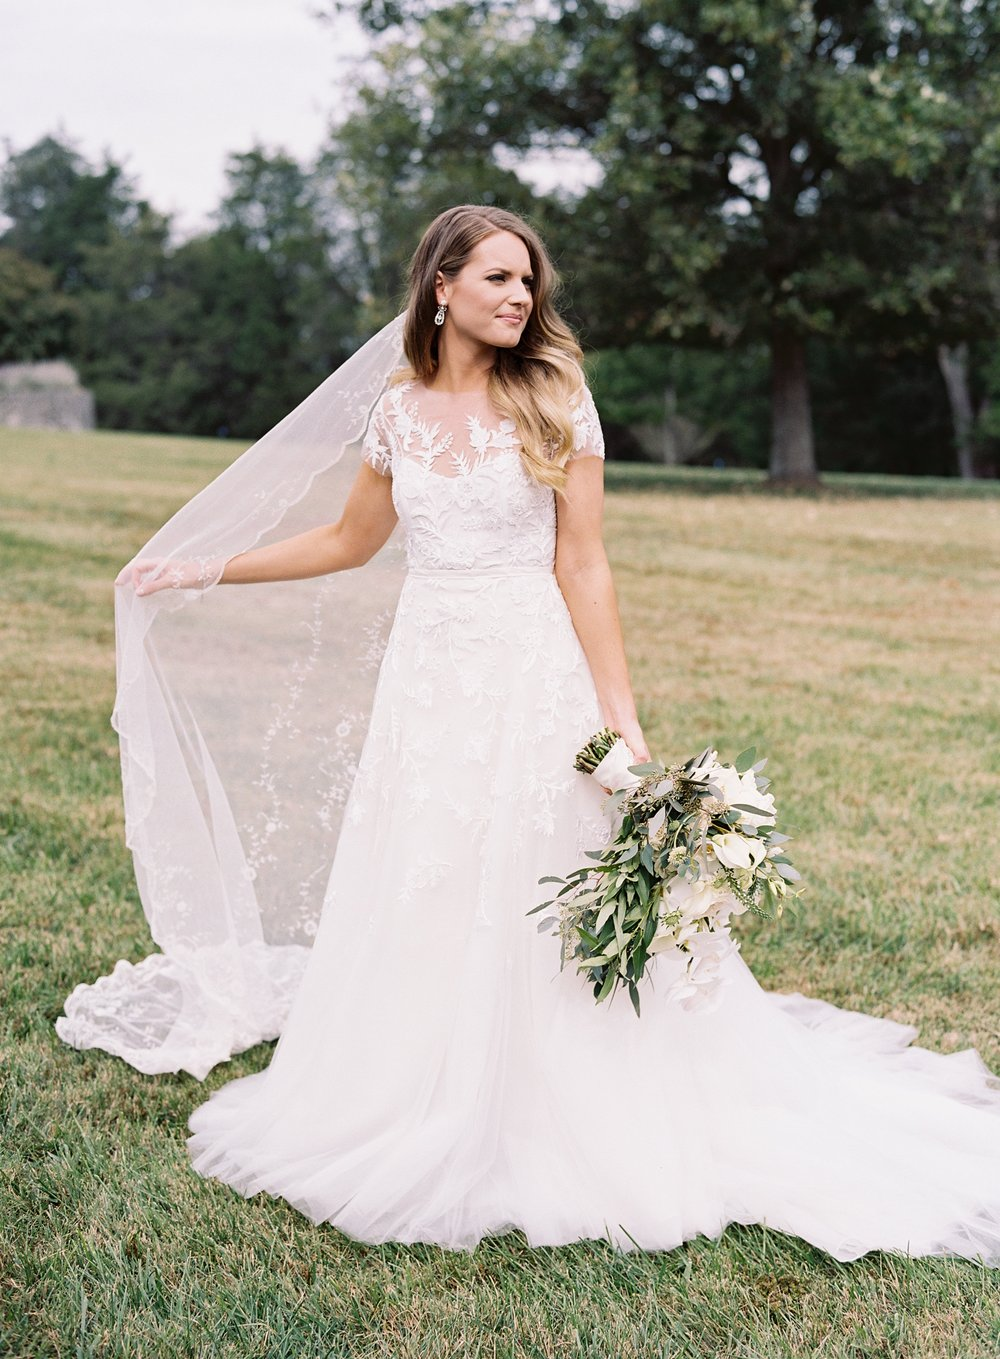 Caroline and Derek's wedding was planned and designed by Big Events Wedding in Nashville, TN. The beautiful bride is pictured on her wedding day.